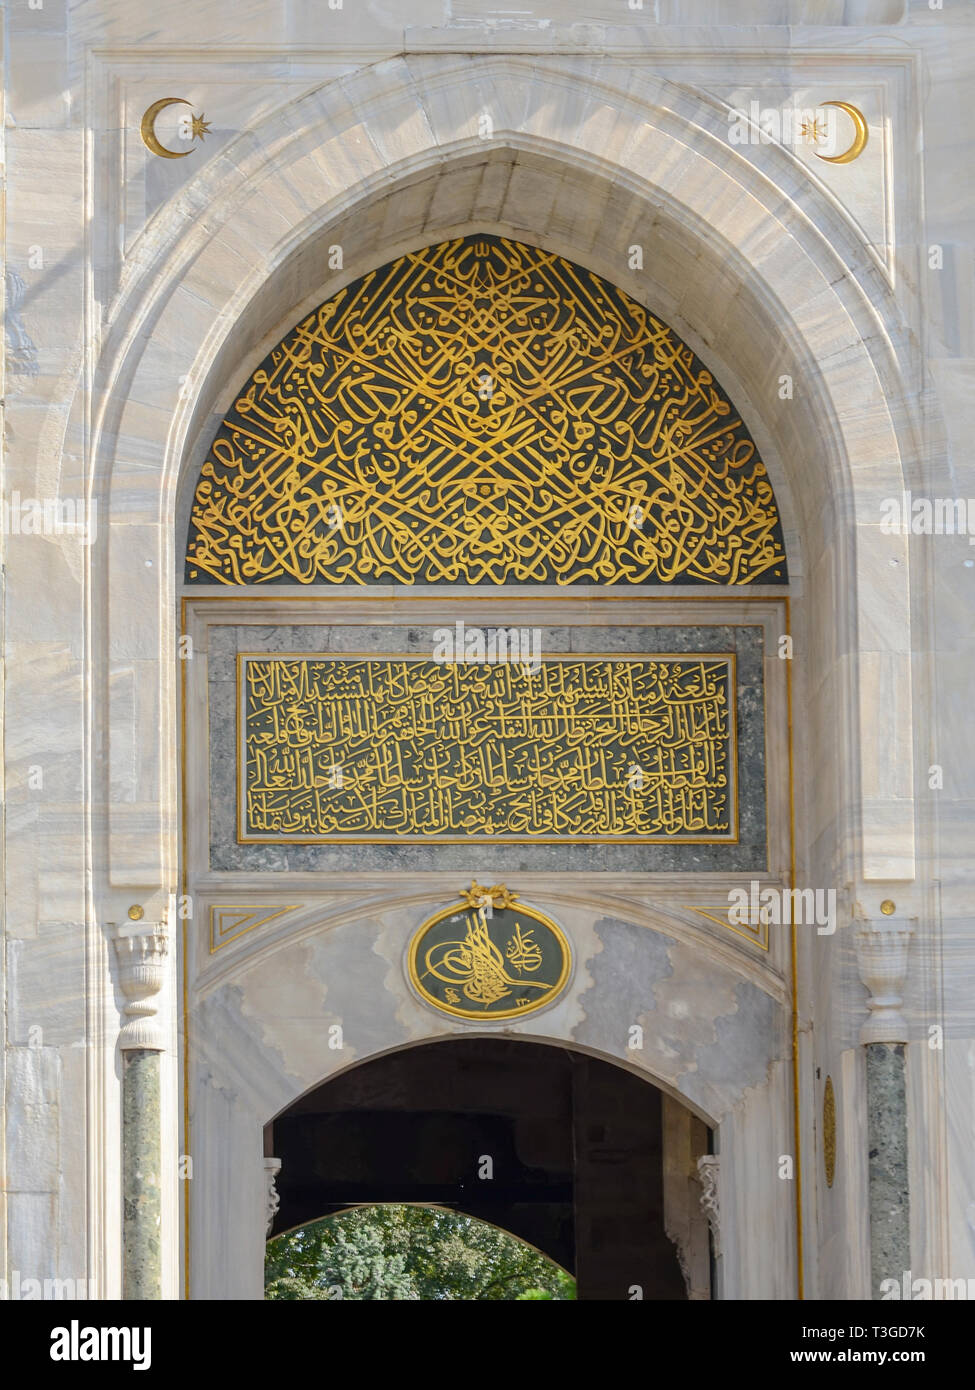 Istanbul, Turkey - September 19 - 2018: Entrance to Topkapi Palace in Istanbul. Former residence of the Ottoman Sultans. Stock Photo